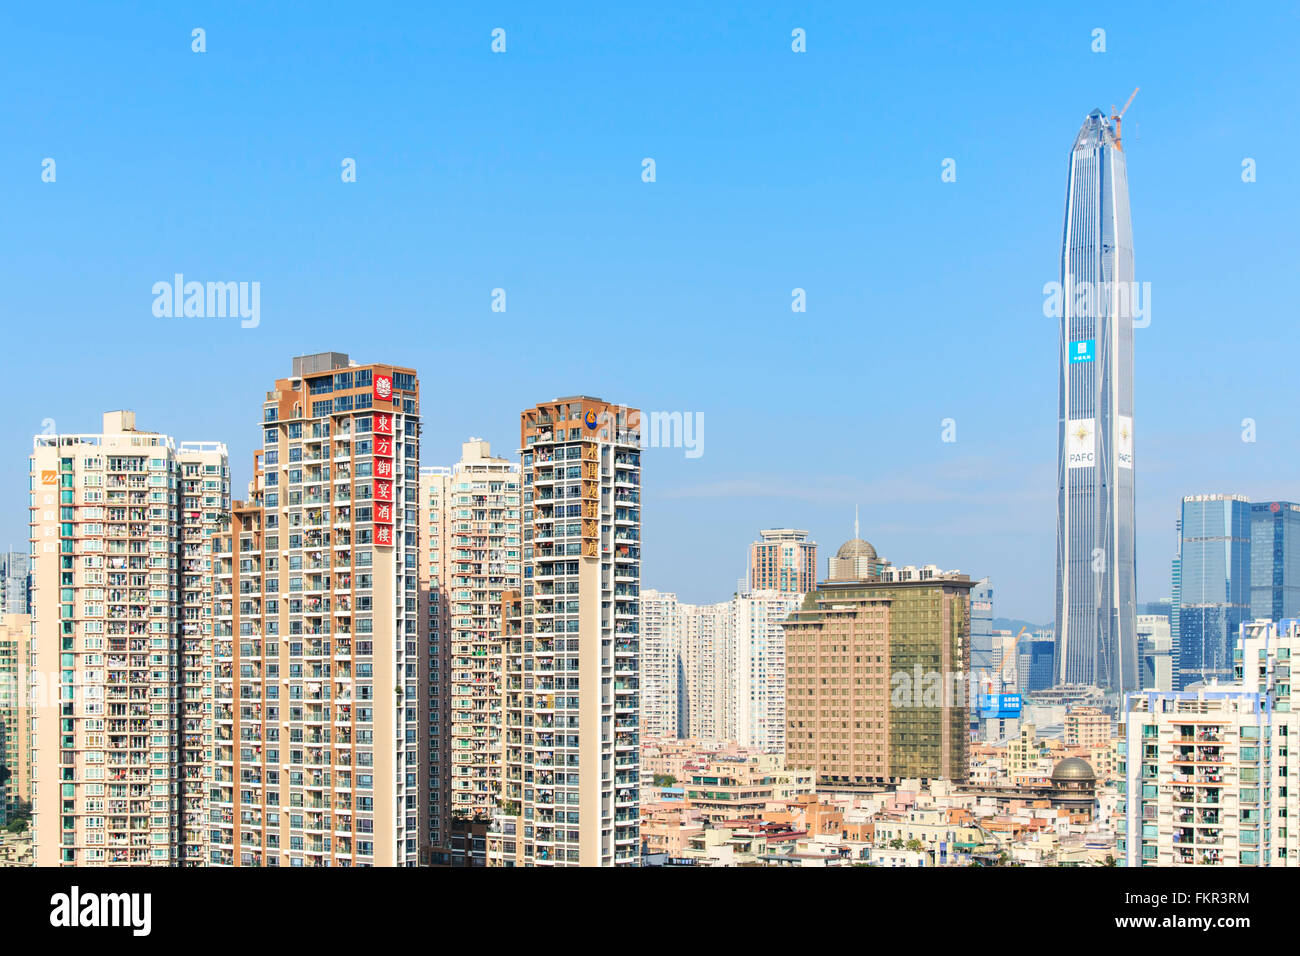 Shenzhen, China - 18 January, 2016: Shenzhen skyline with the KK100, the second tallest building of the city, on - Stock Image